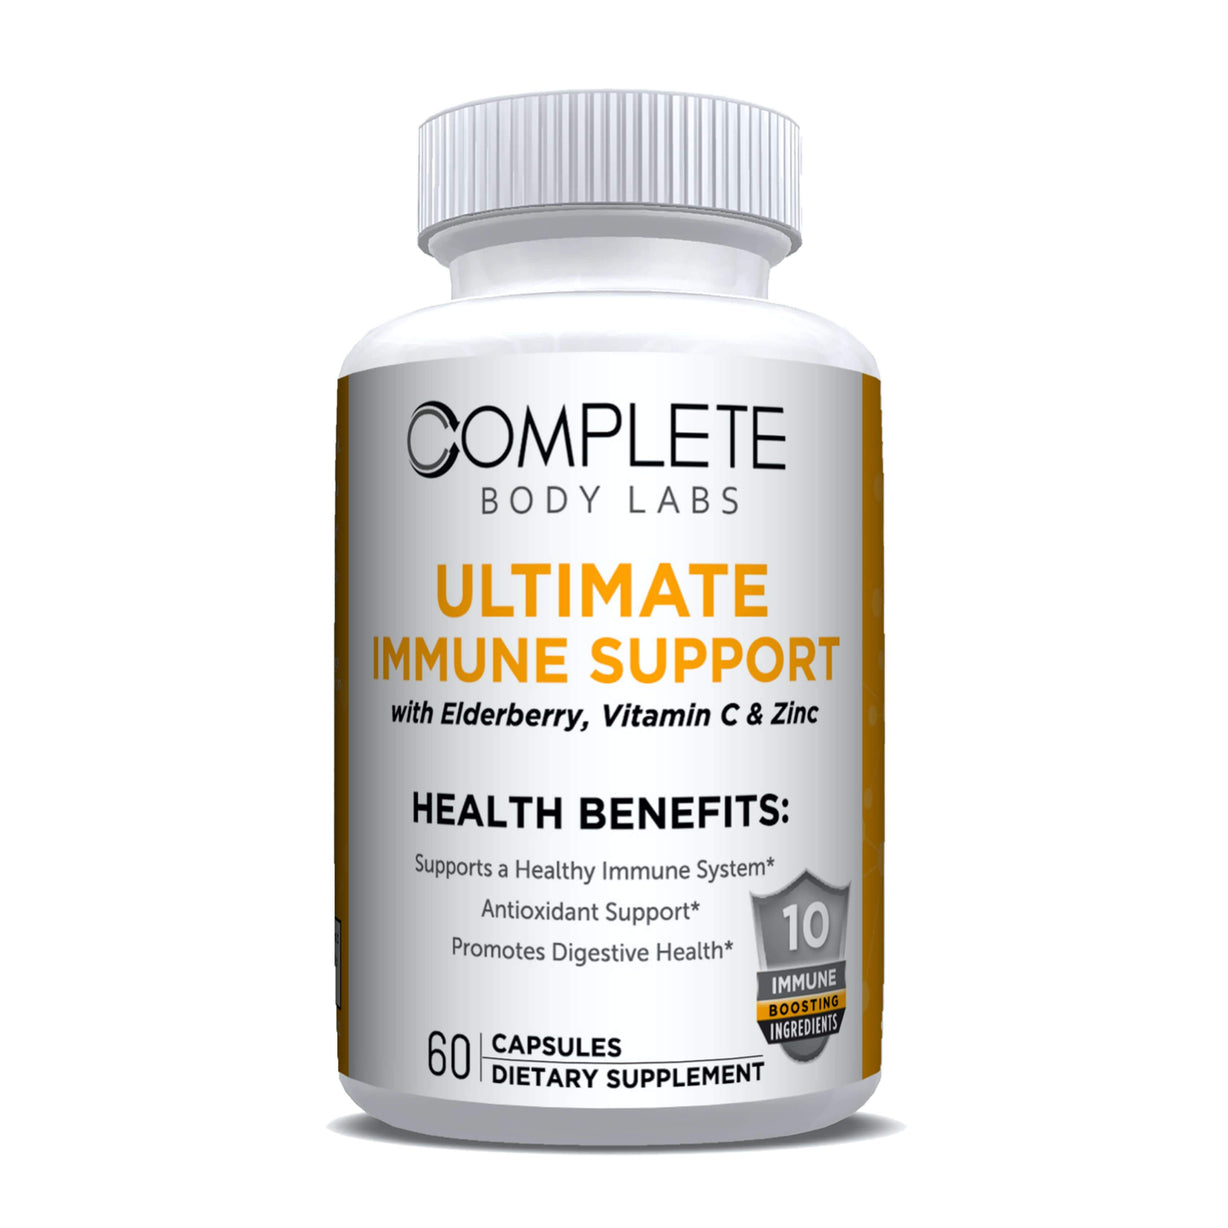 ULTIMATE IMMUNE SUPPORT Complete Body Labs | Probiotics, Nootropics, Brain Supplements, Protein Bars, Workout Supplements, Health Supplements, Omega-3 & Essential Vitamins For Men & Women